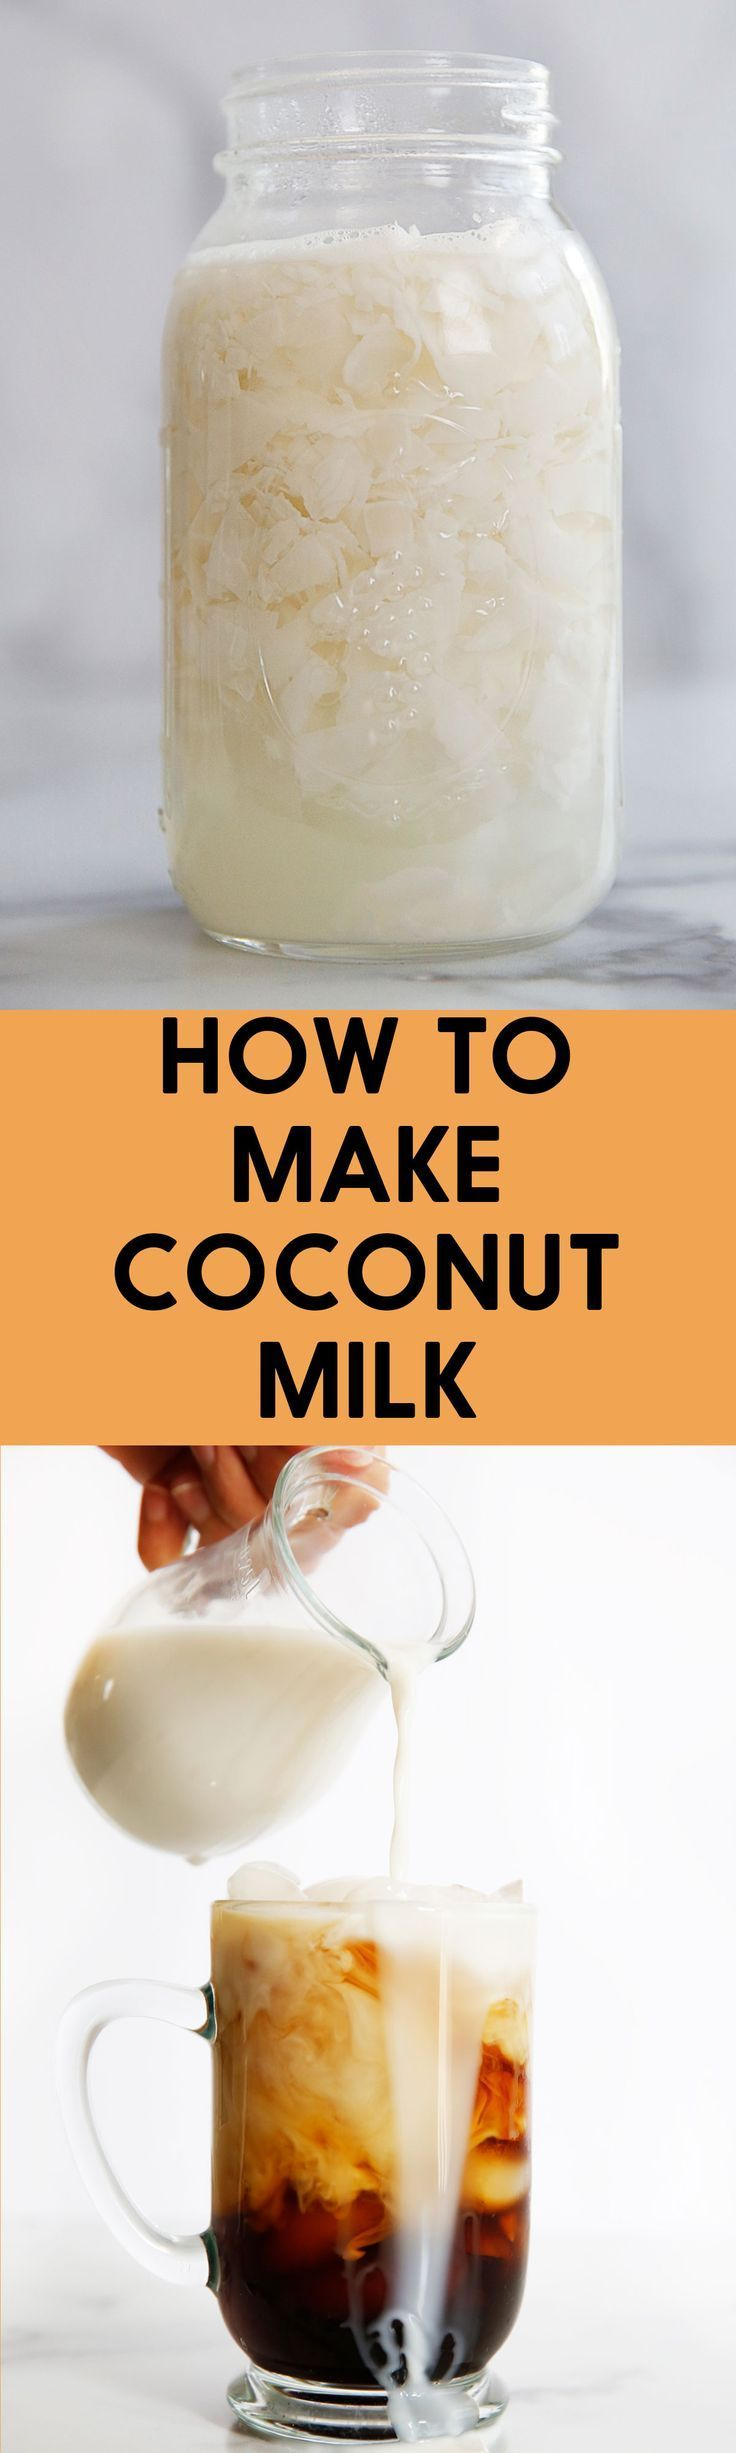 How to make coconut milk at home lexis clean kitchen